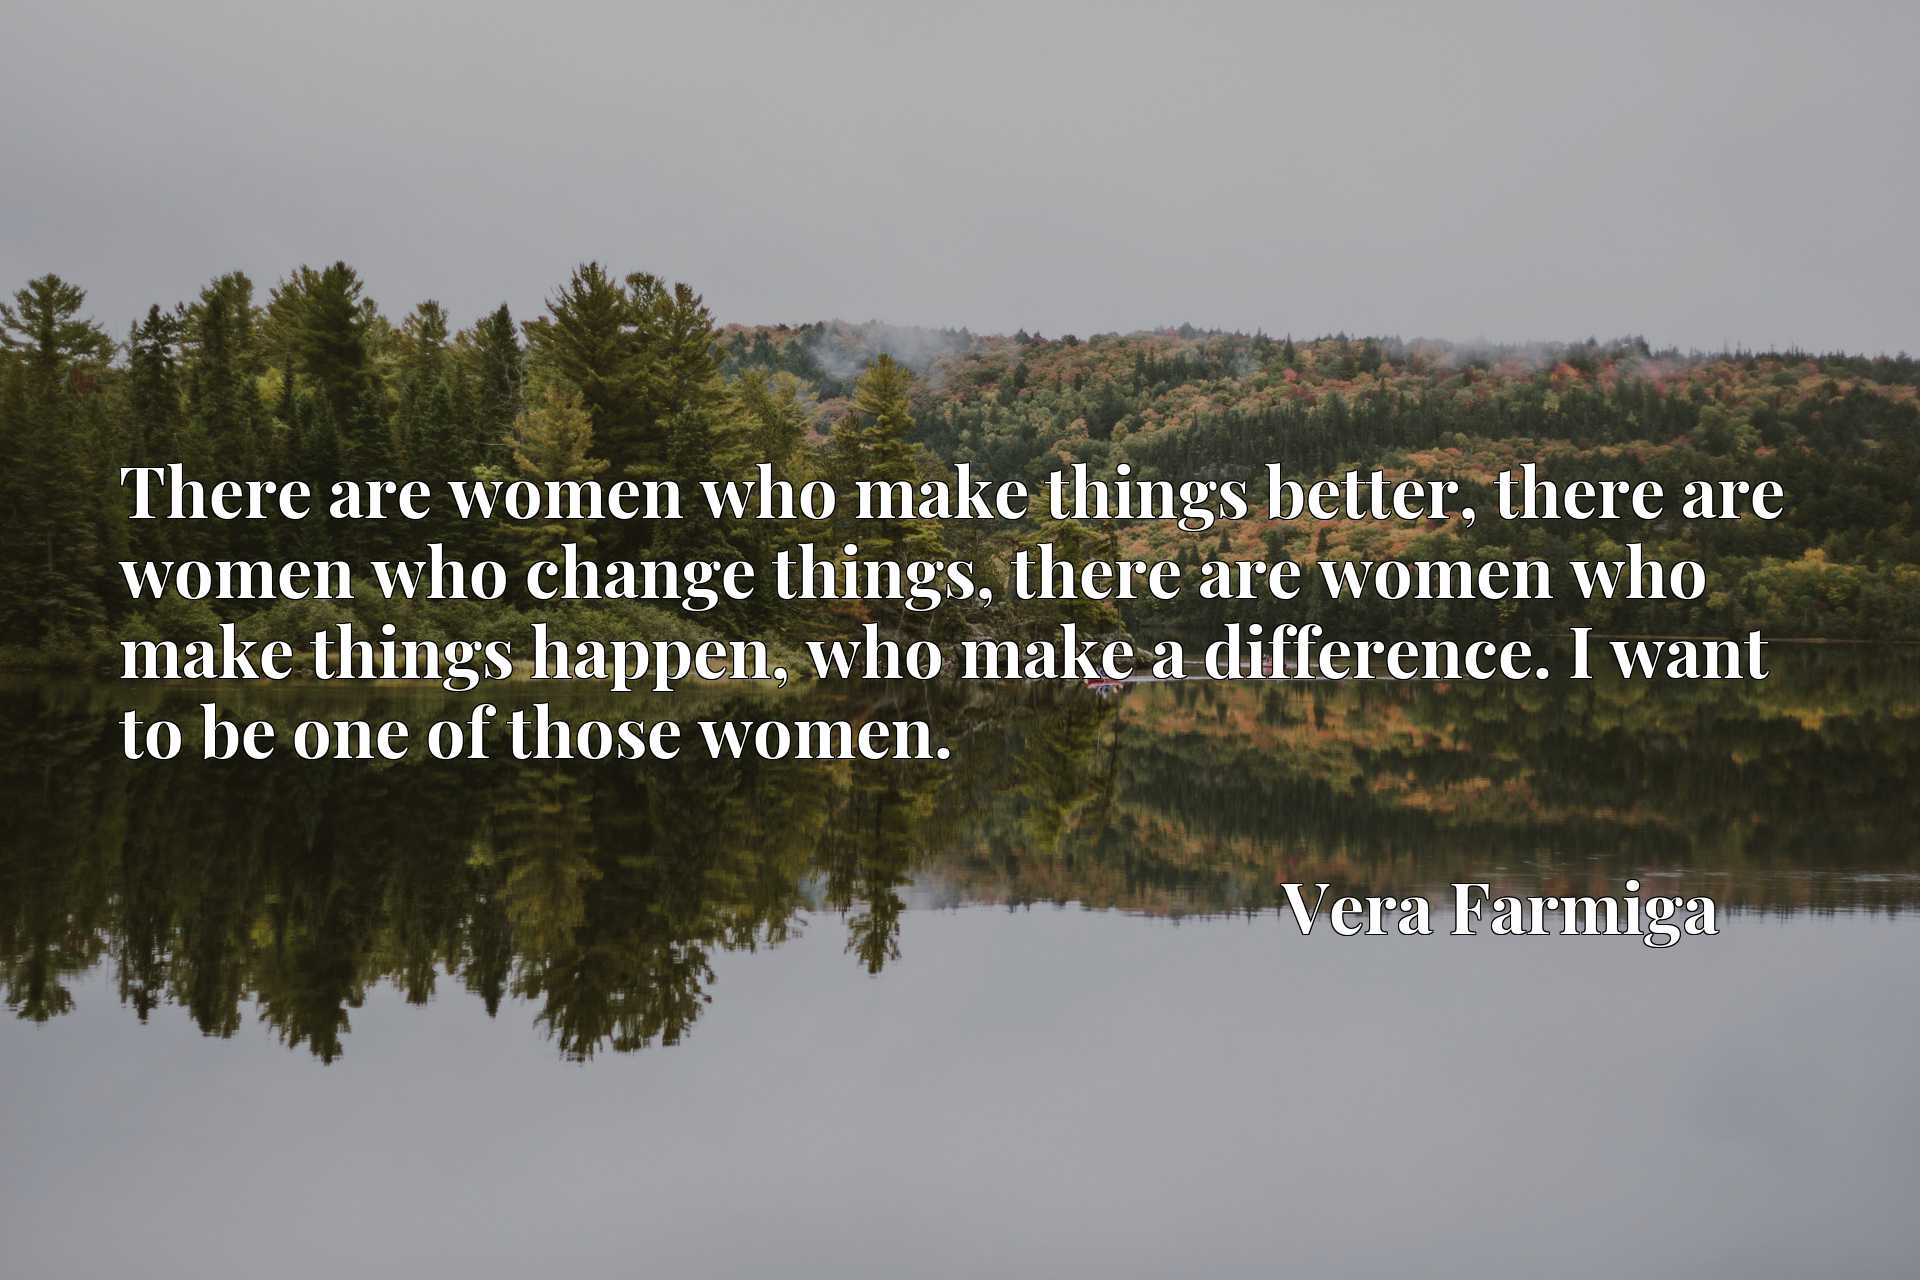 There are women who make things better, there are women who change things, there are women who make things happen, who make a difference. I want to be one of those women.